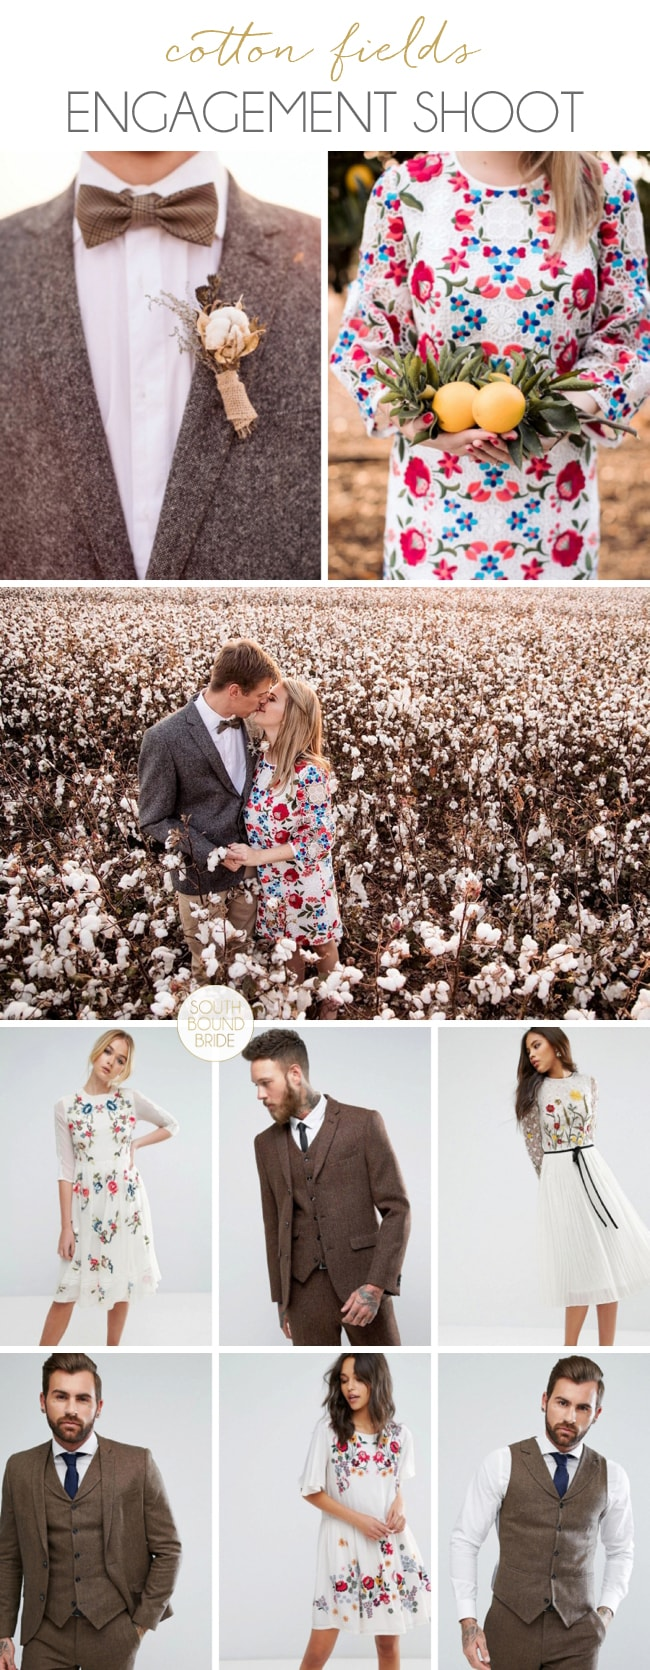 Cotton Fields Engagement Shoot: Shop the Look | SouthBound Bride